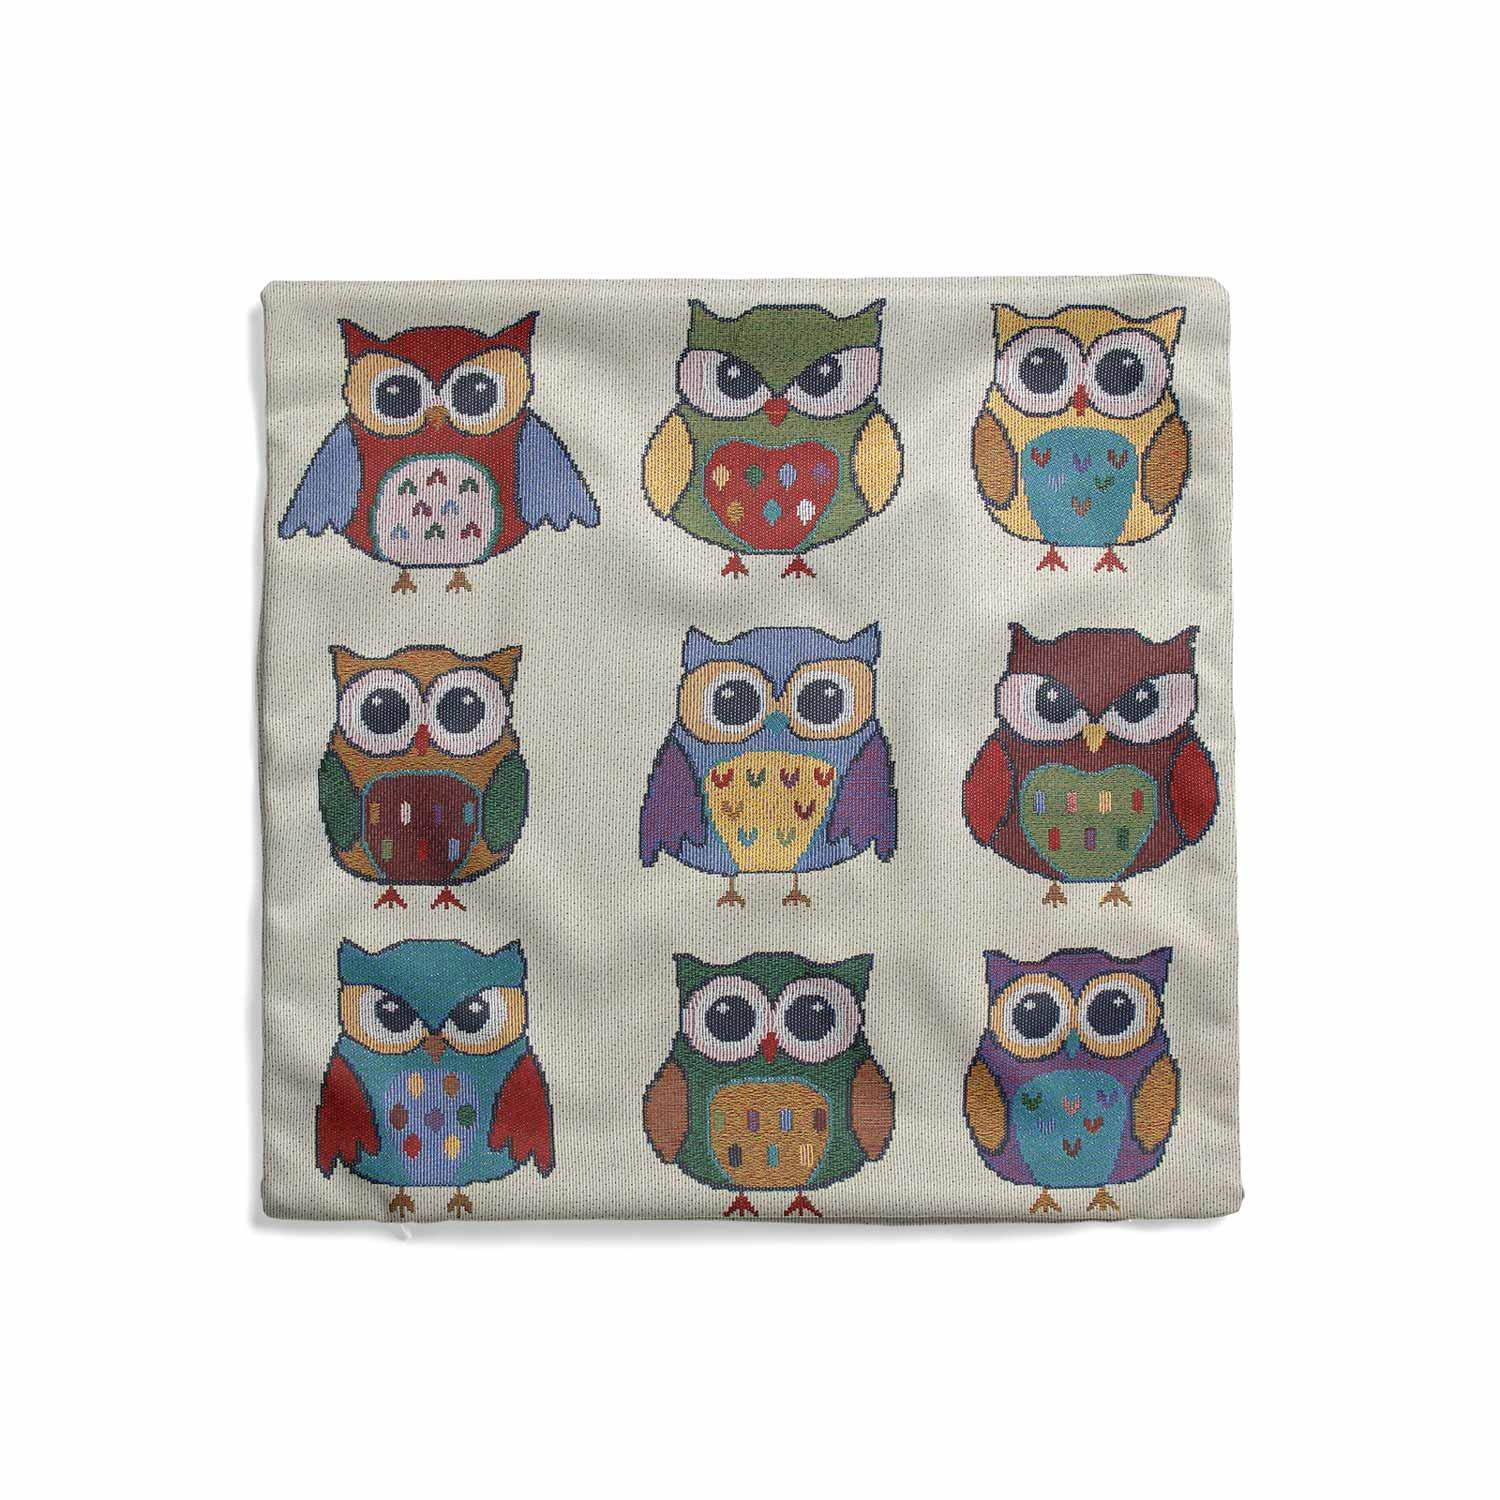 Tapestry-Cushion-Covers-Vintage-Pillow-Cover-Collection-18-034-45cm-Filled-Cushions thumbnail 159